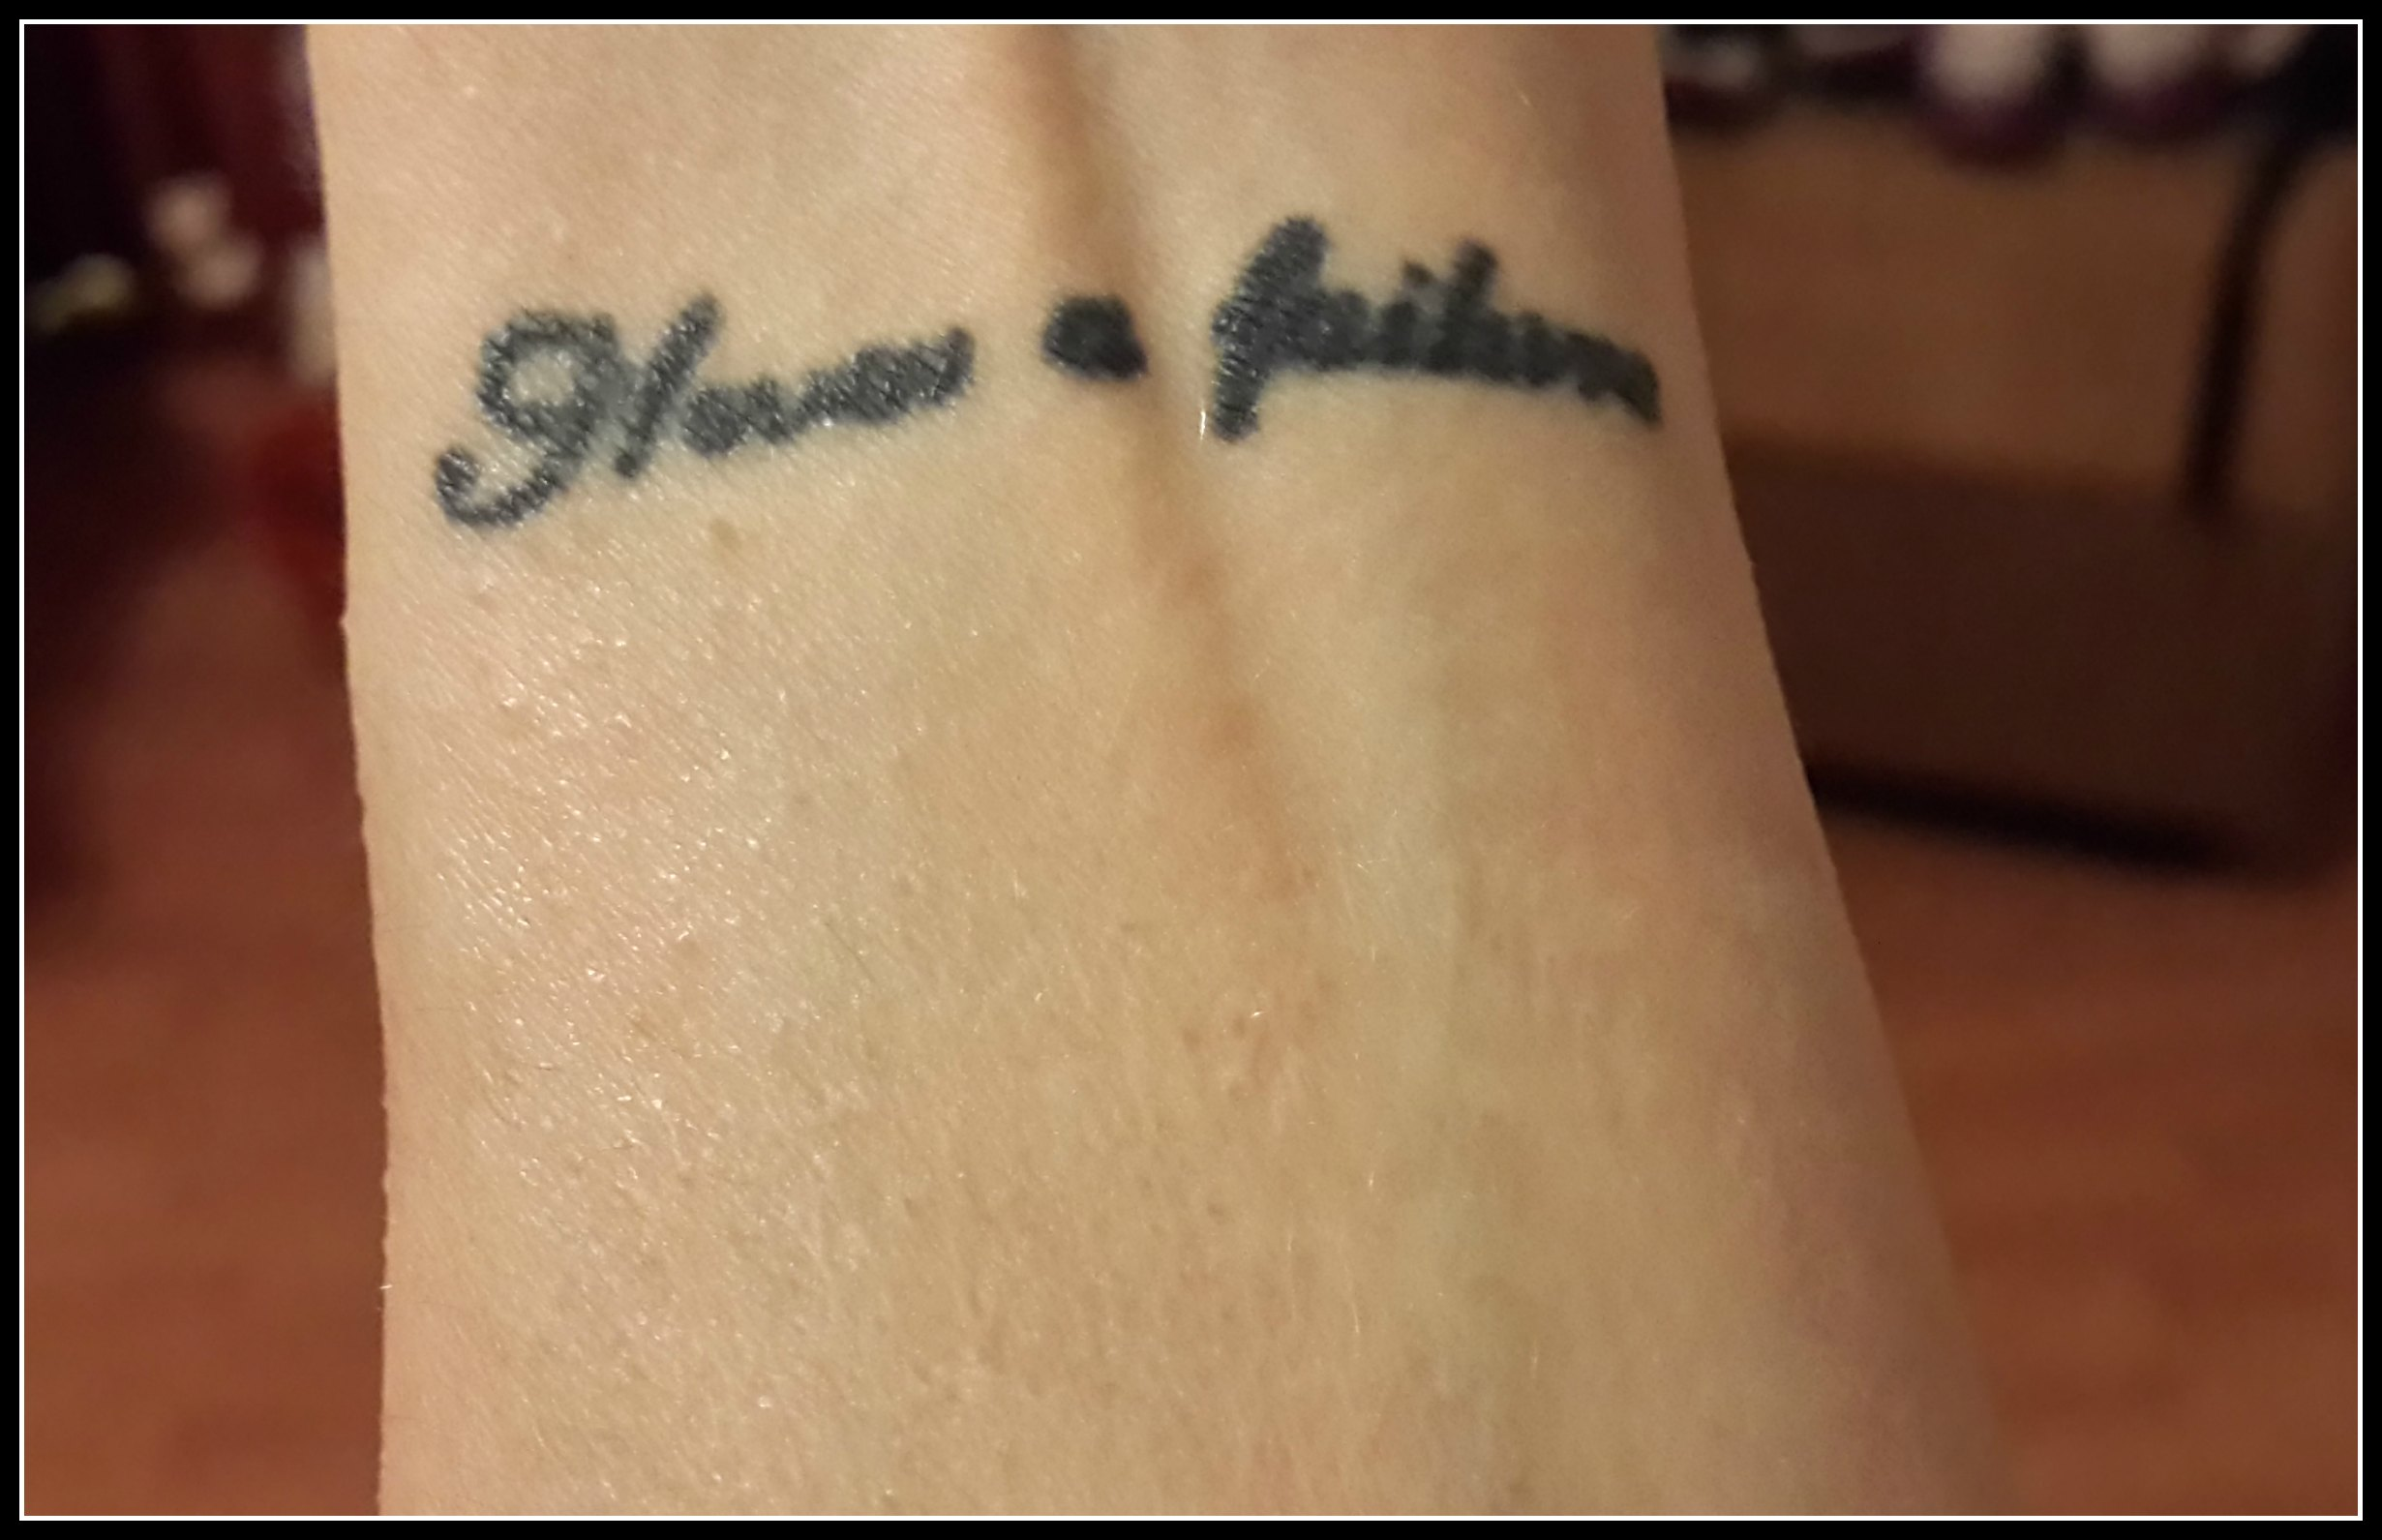 Tattoo-left wrist-Quote